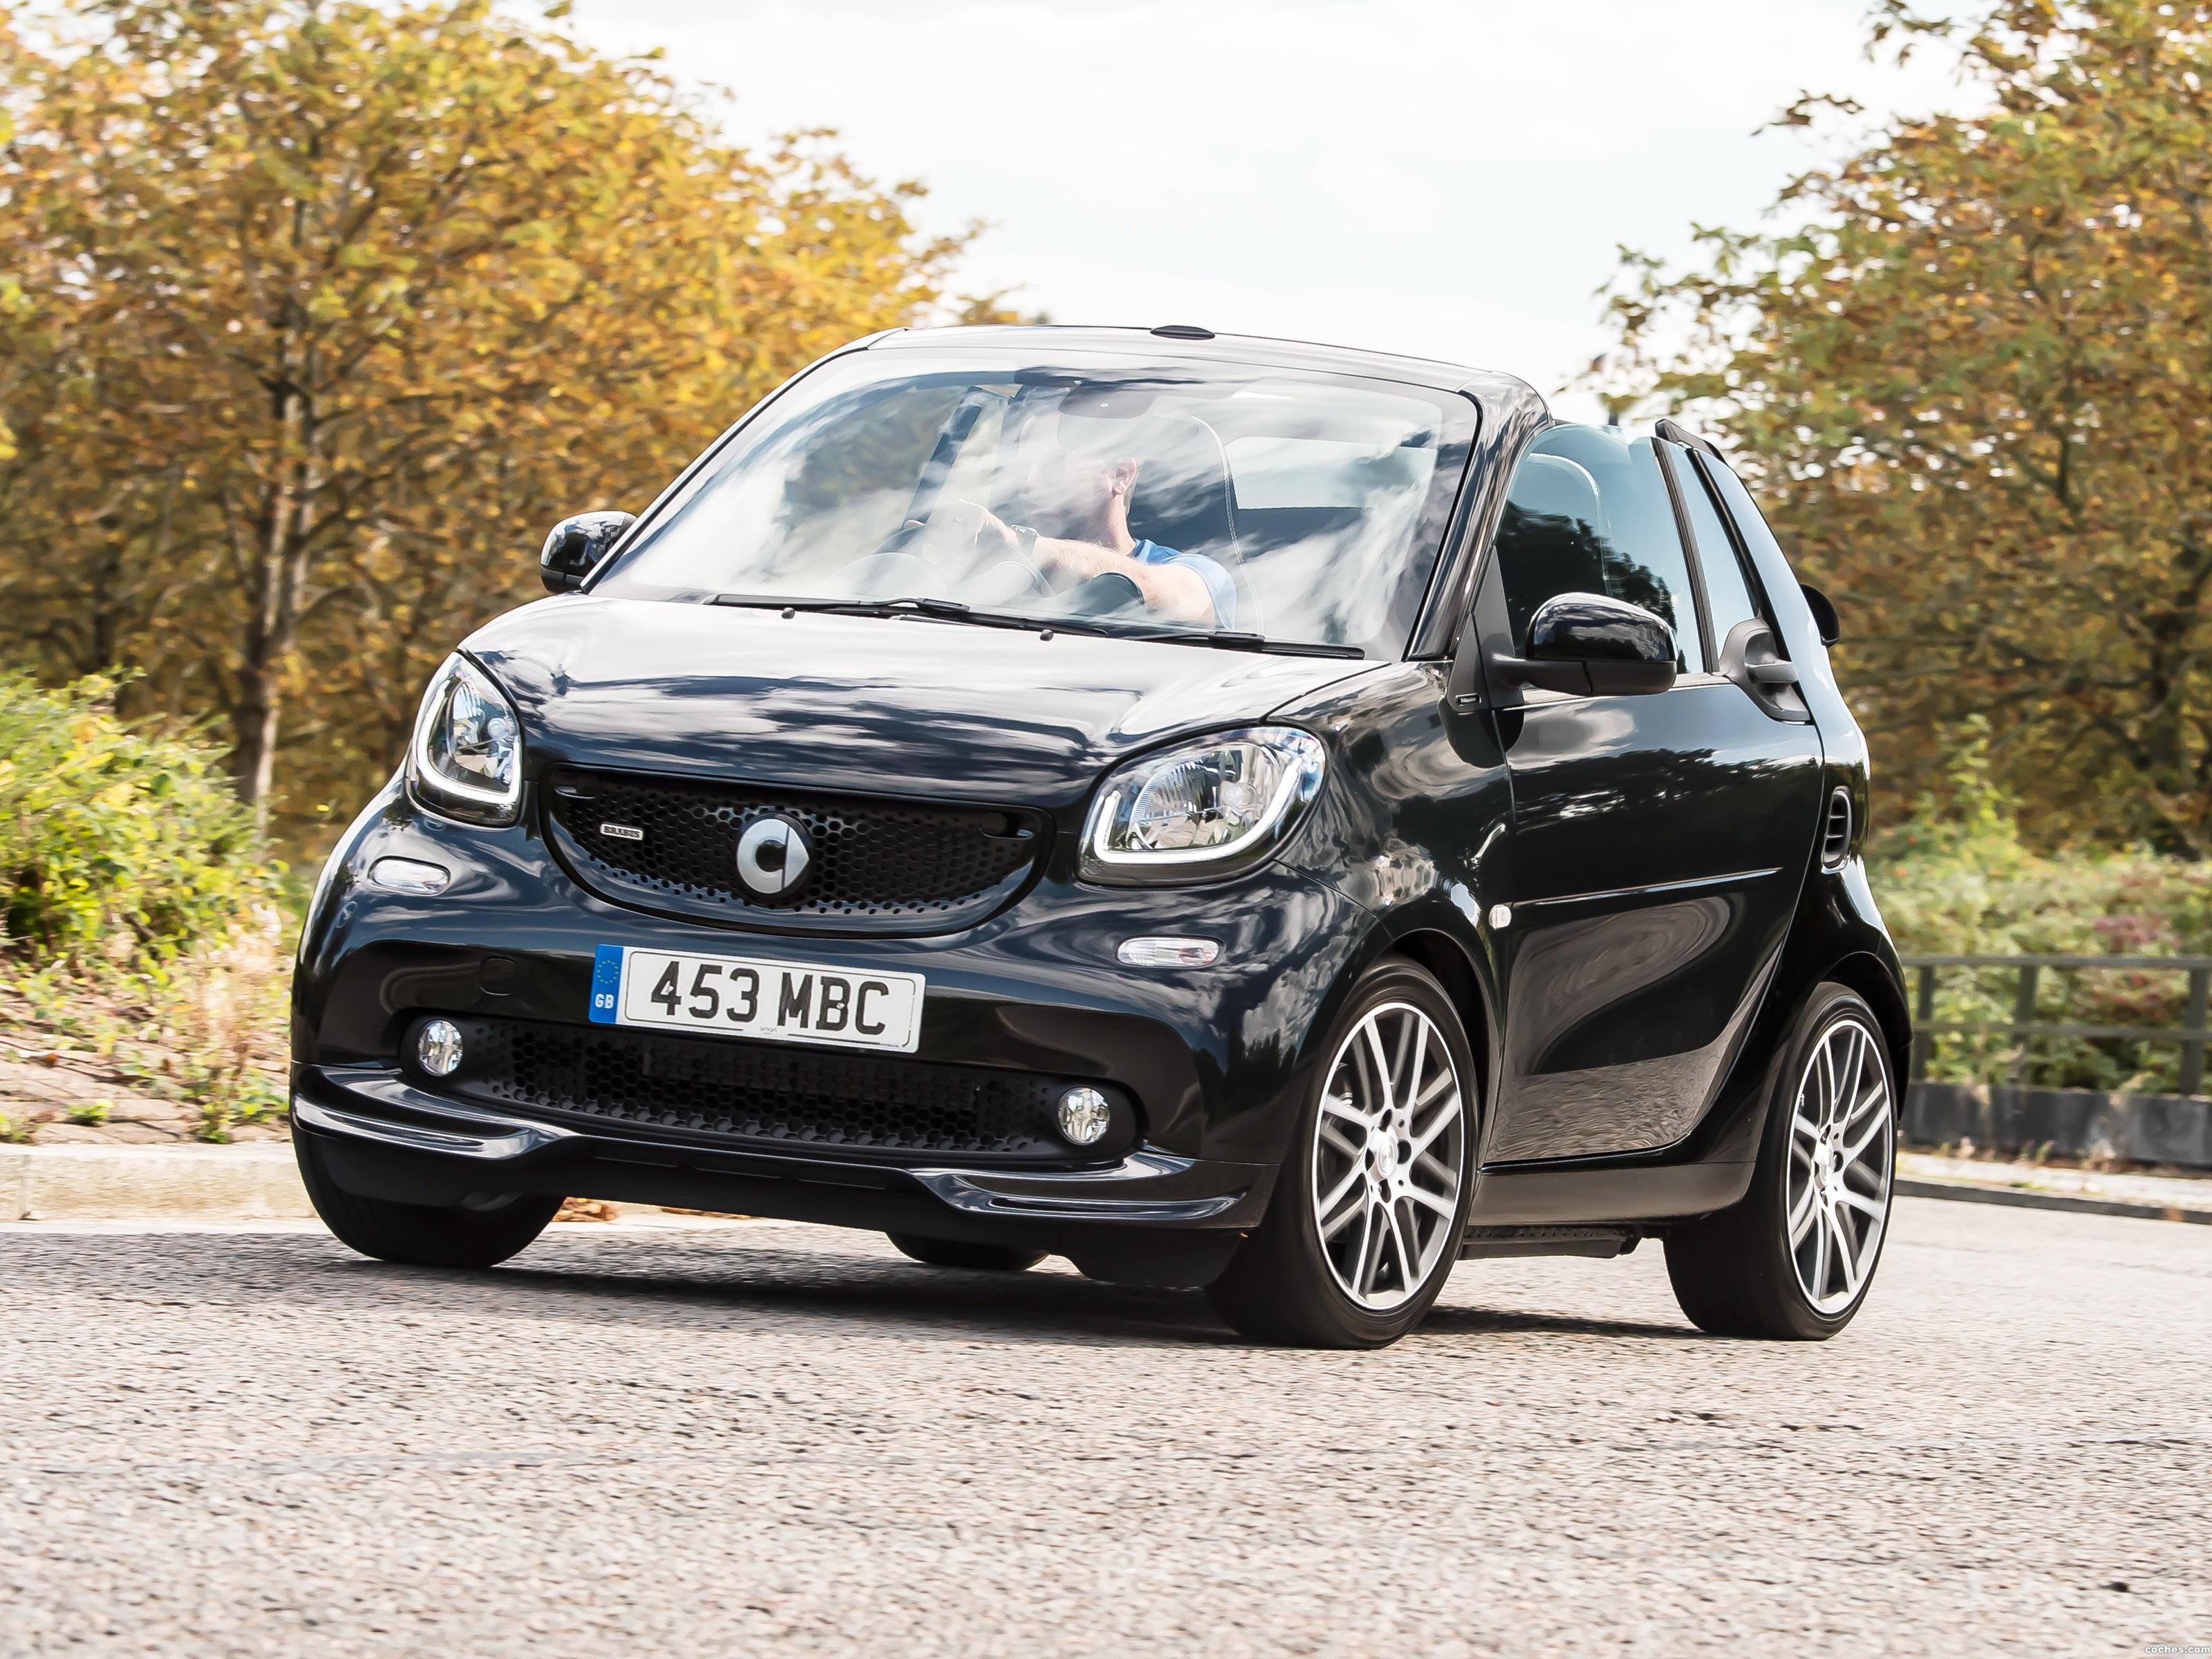 Foto 0 de Brabus Smart ForTwo Xclusive Cabrio A453 UK 2016